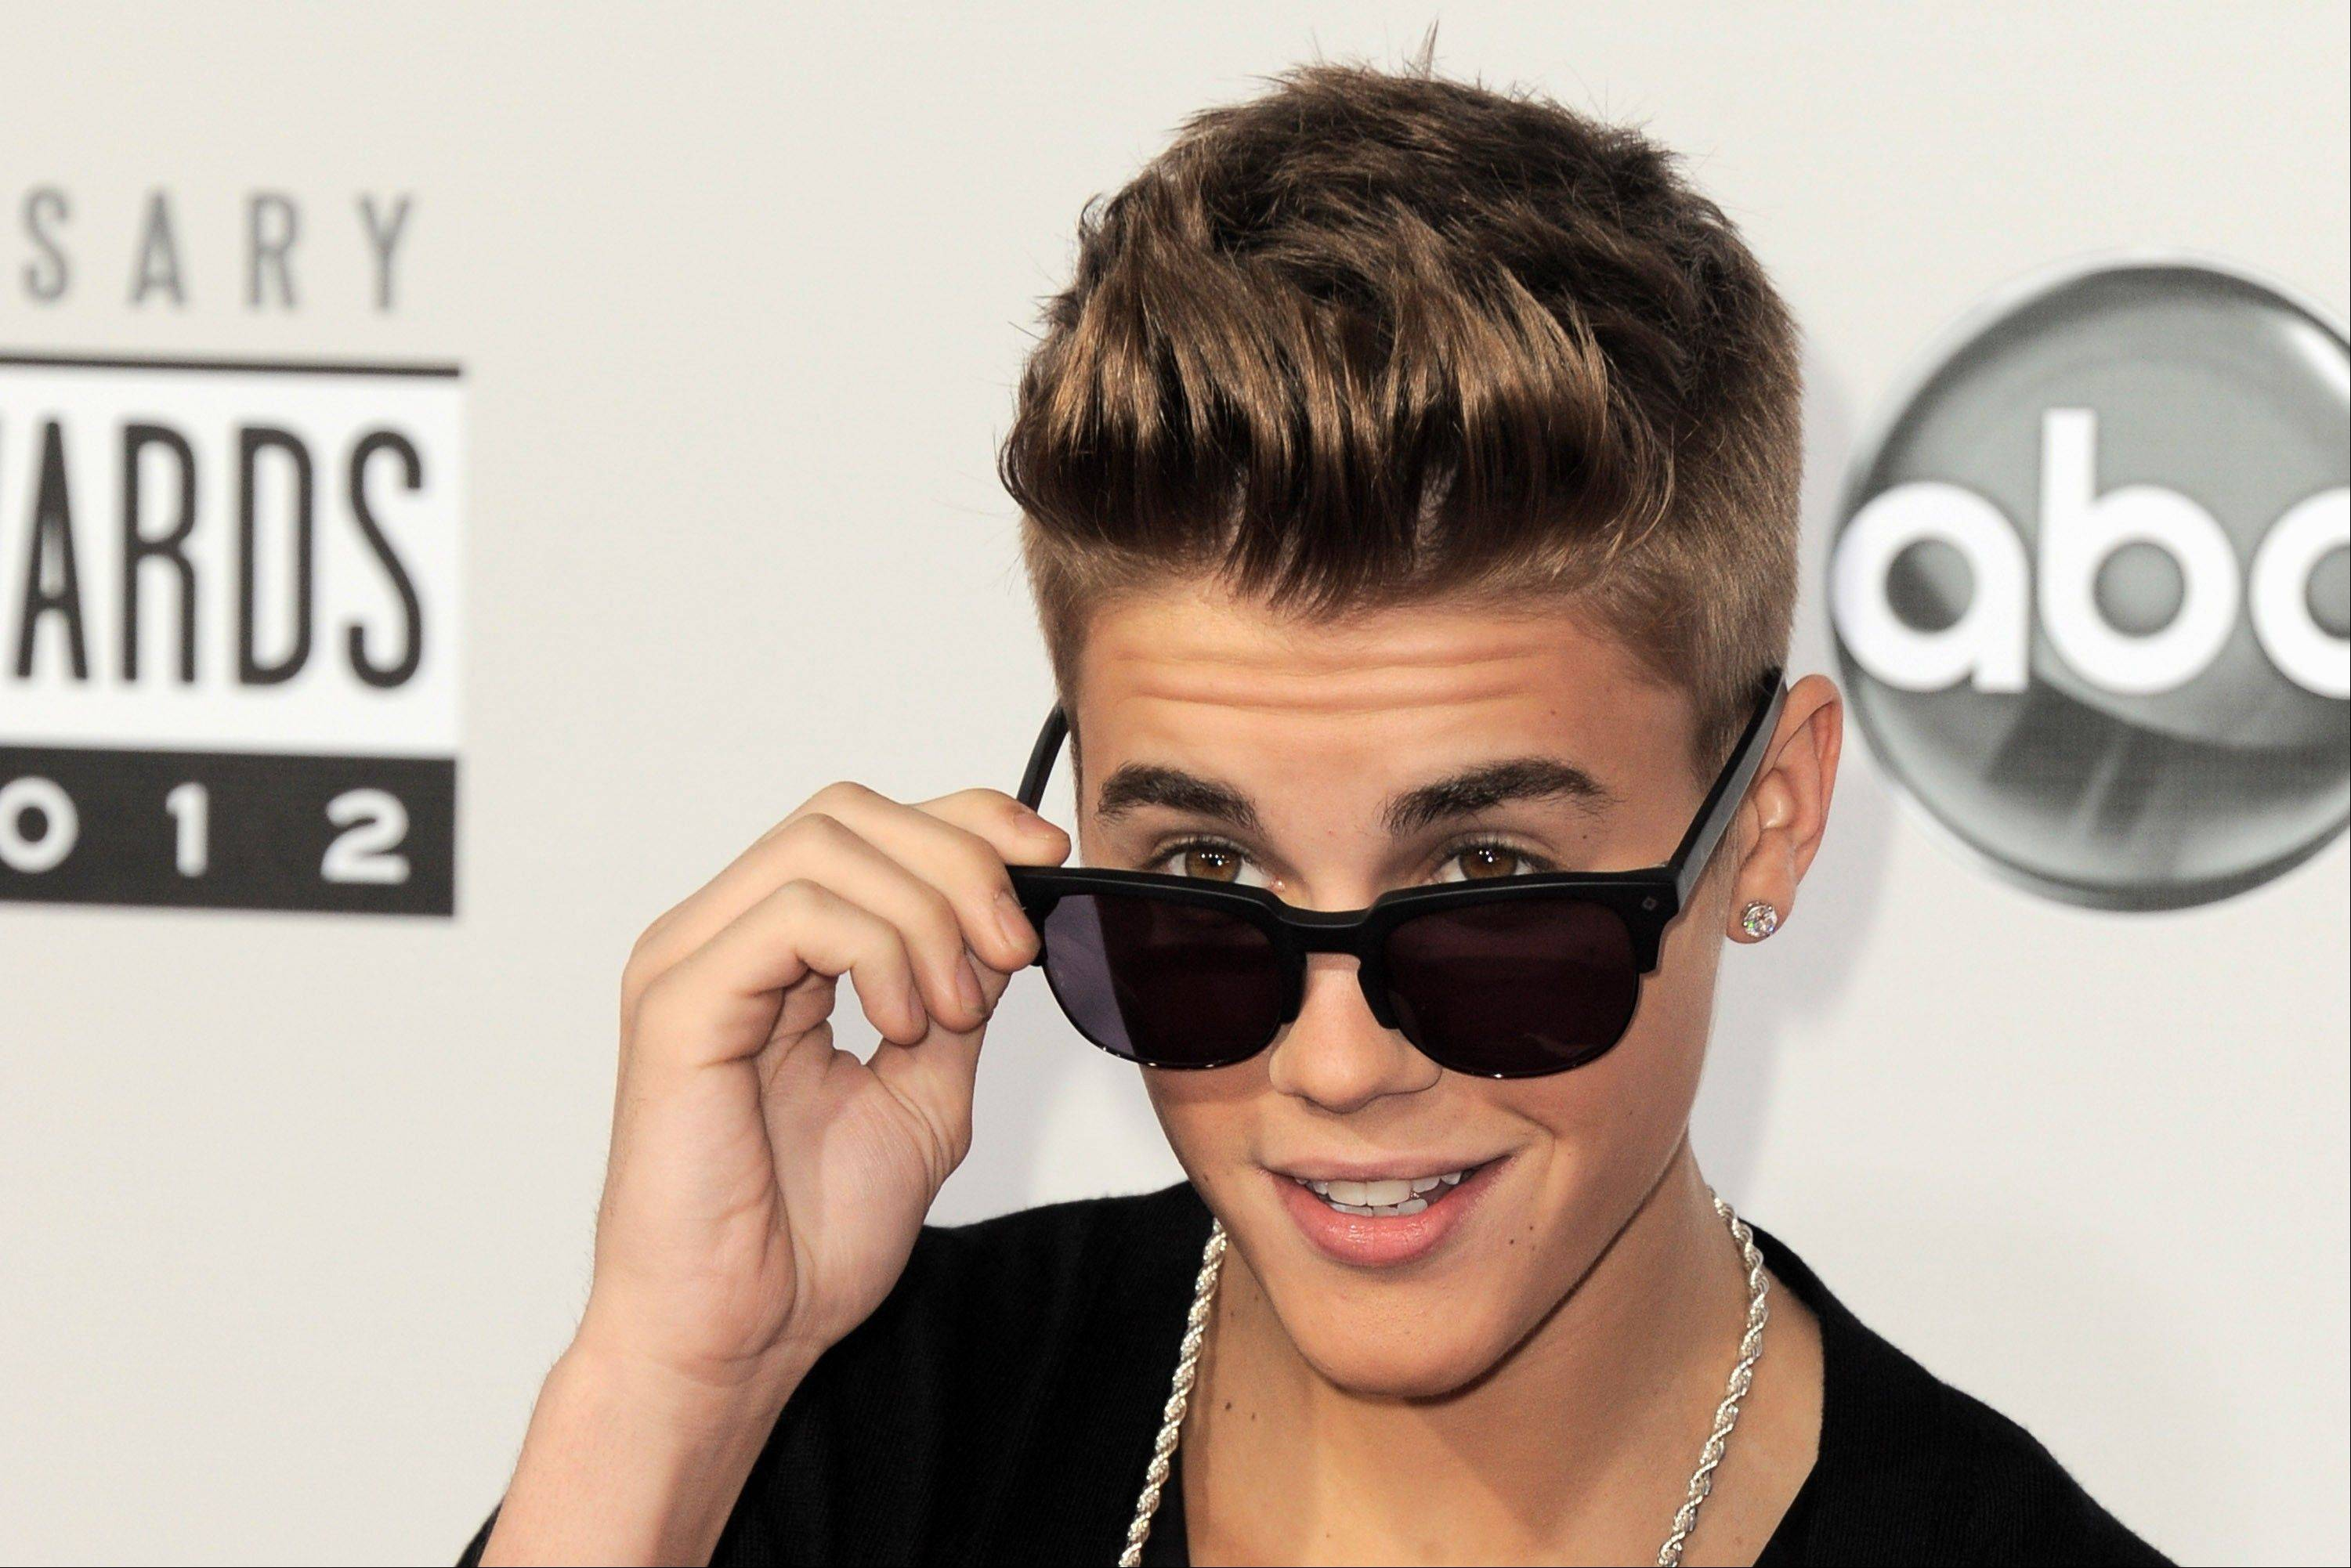 Police say a paparazzo was hit by a car and killed after taking photos of Justin Bieber�s white Ferrari on a Los Angeles street Tuesday. Police say Bieber was not in the Ferrari at the time.